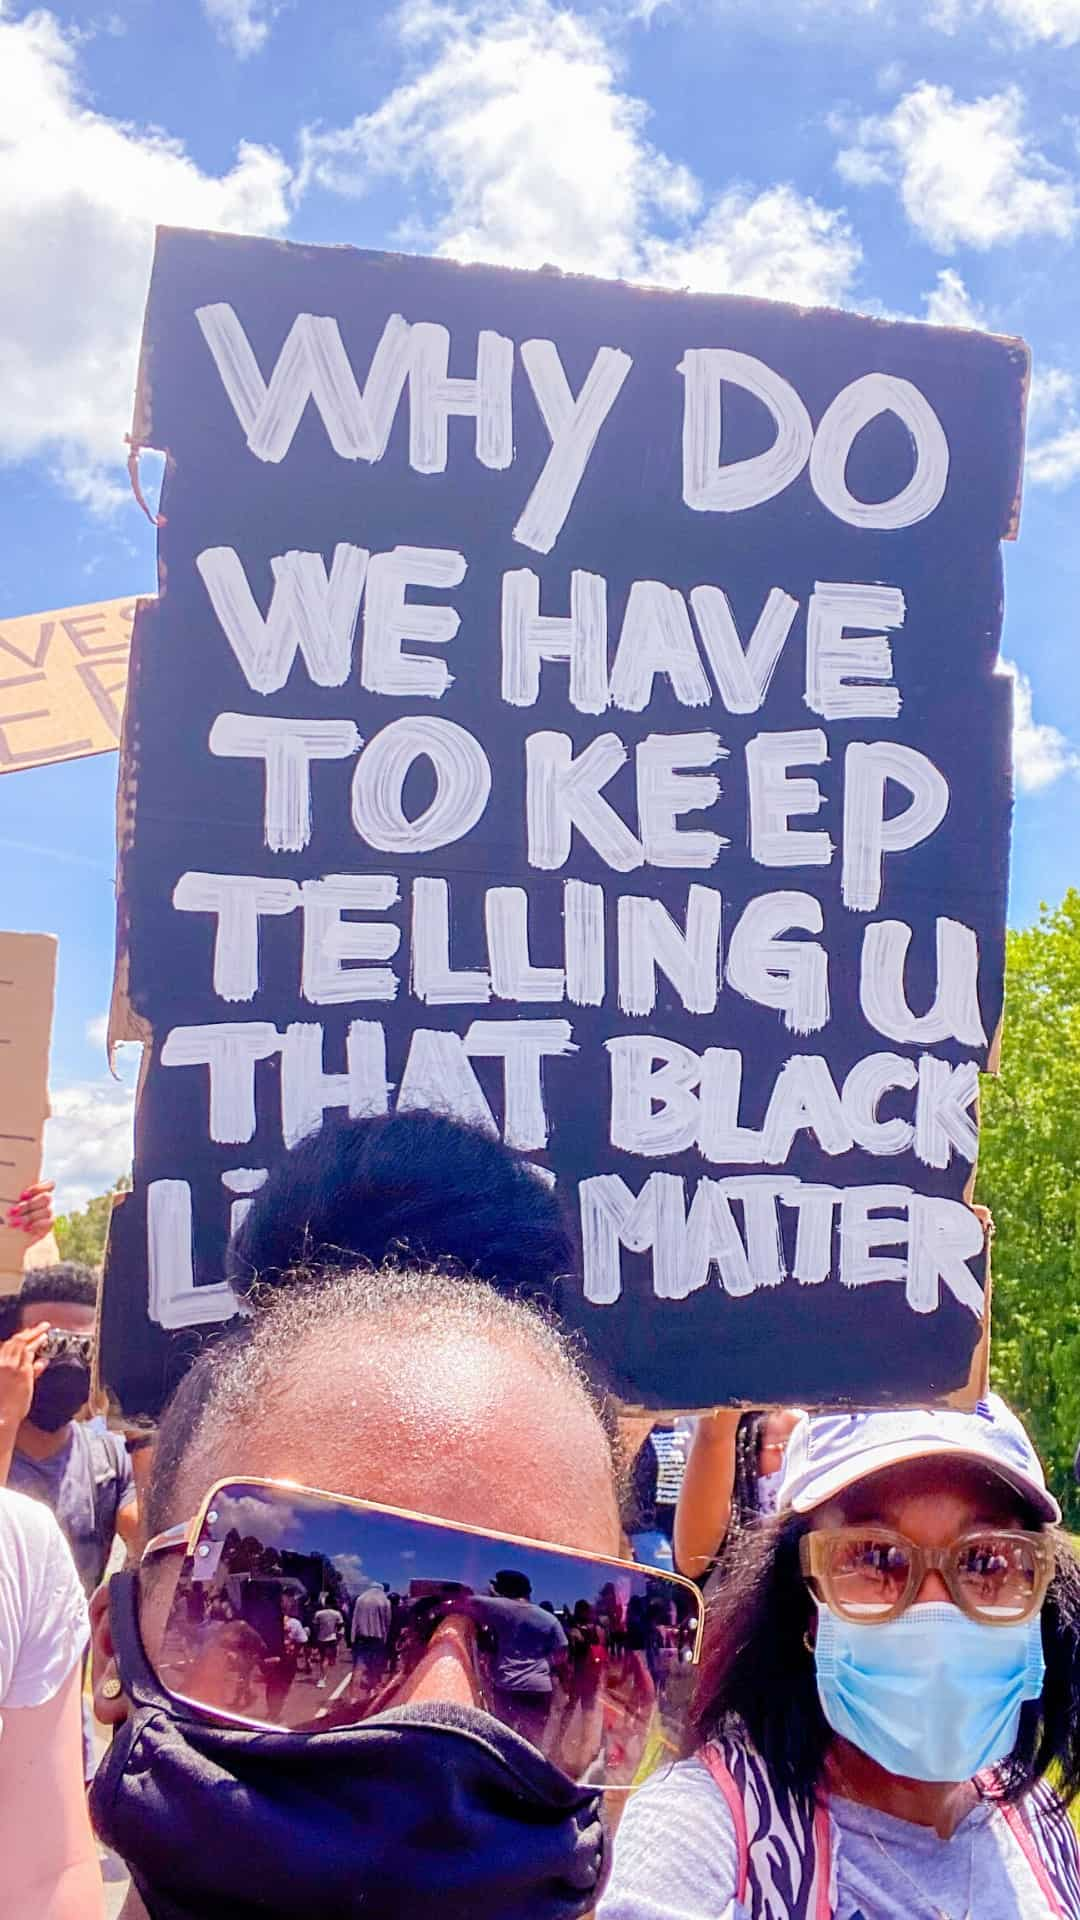 why do we we have to keep tell you Black lives matter? protest sign